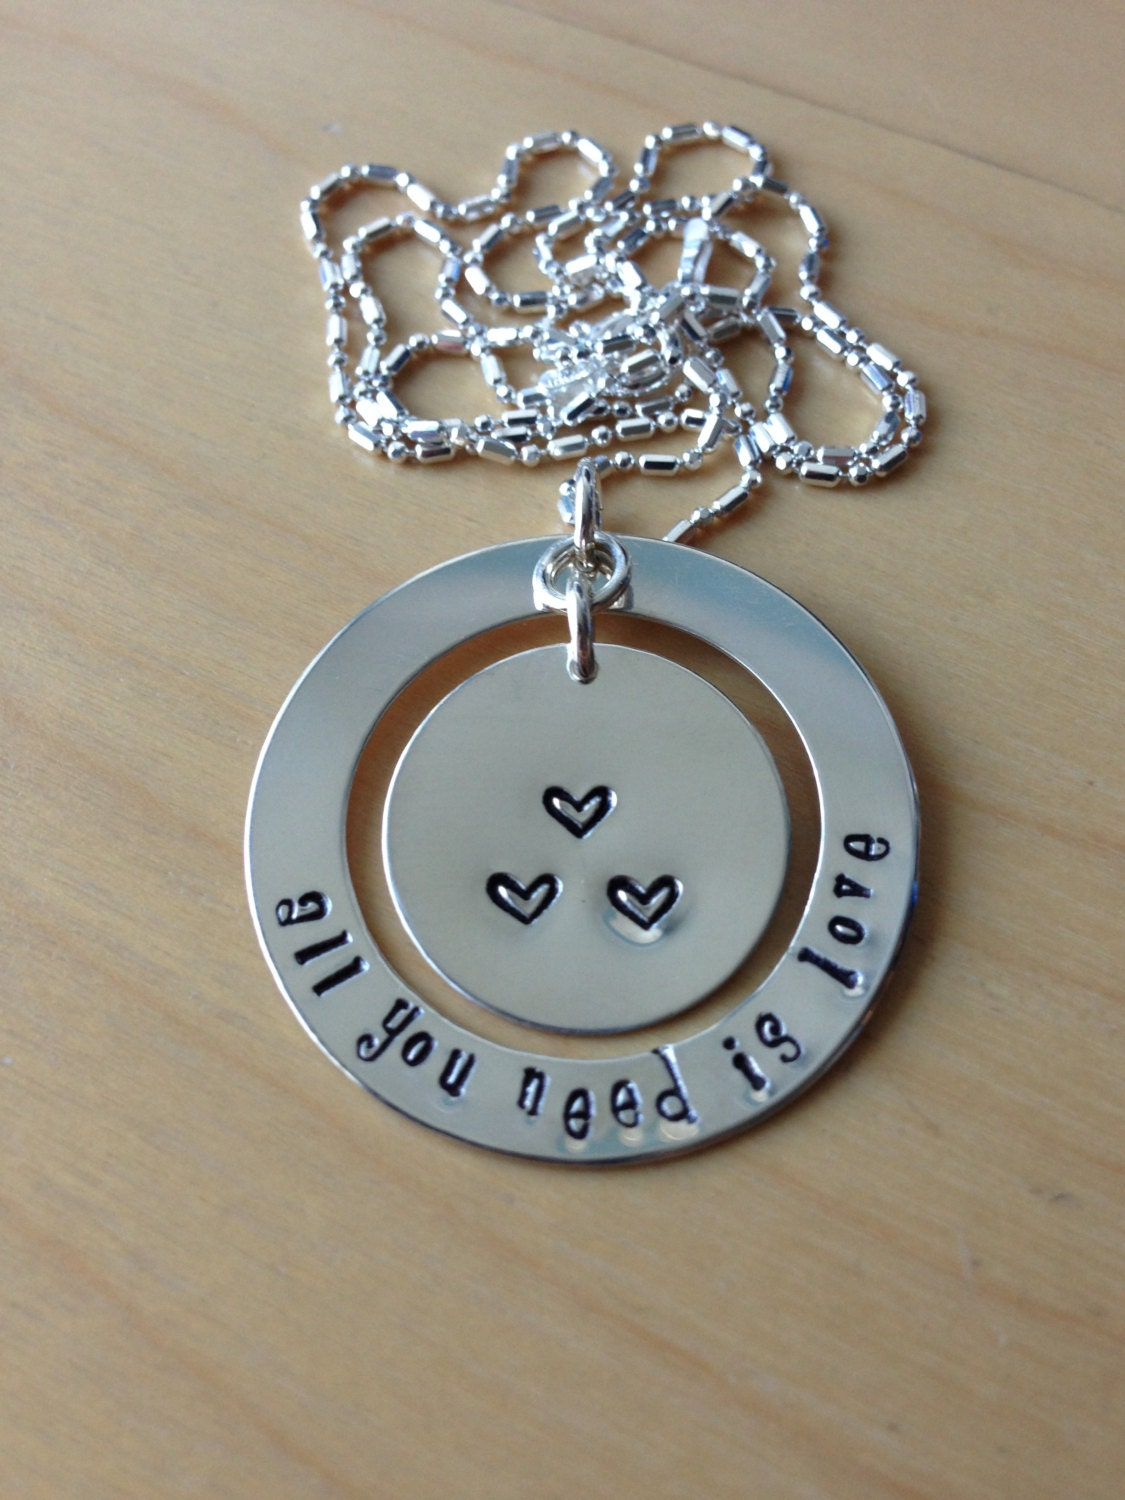 All You Need Is Love Sterling Silver, Hand Stamped Necklace